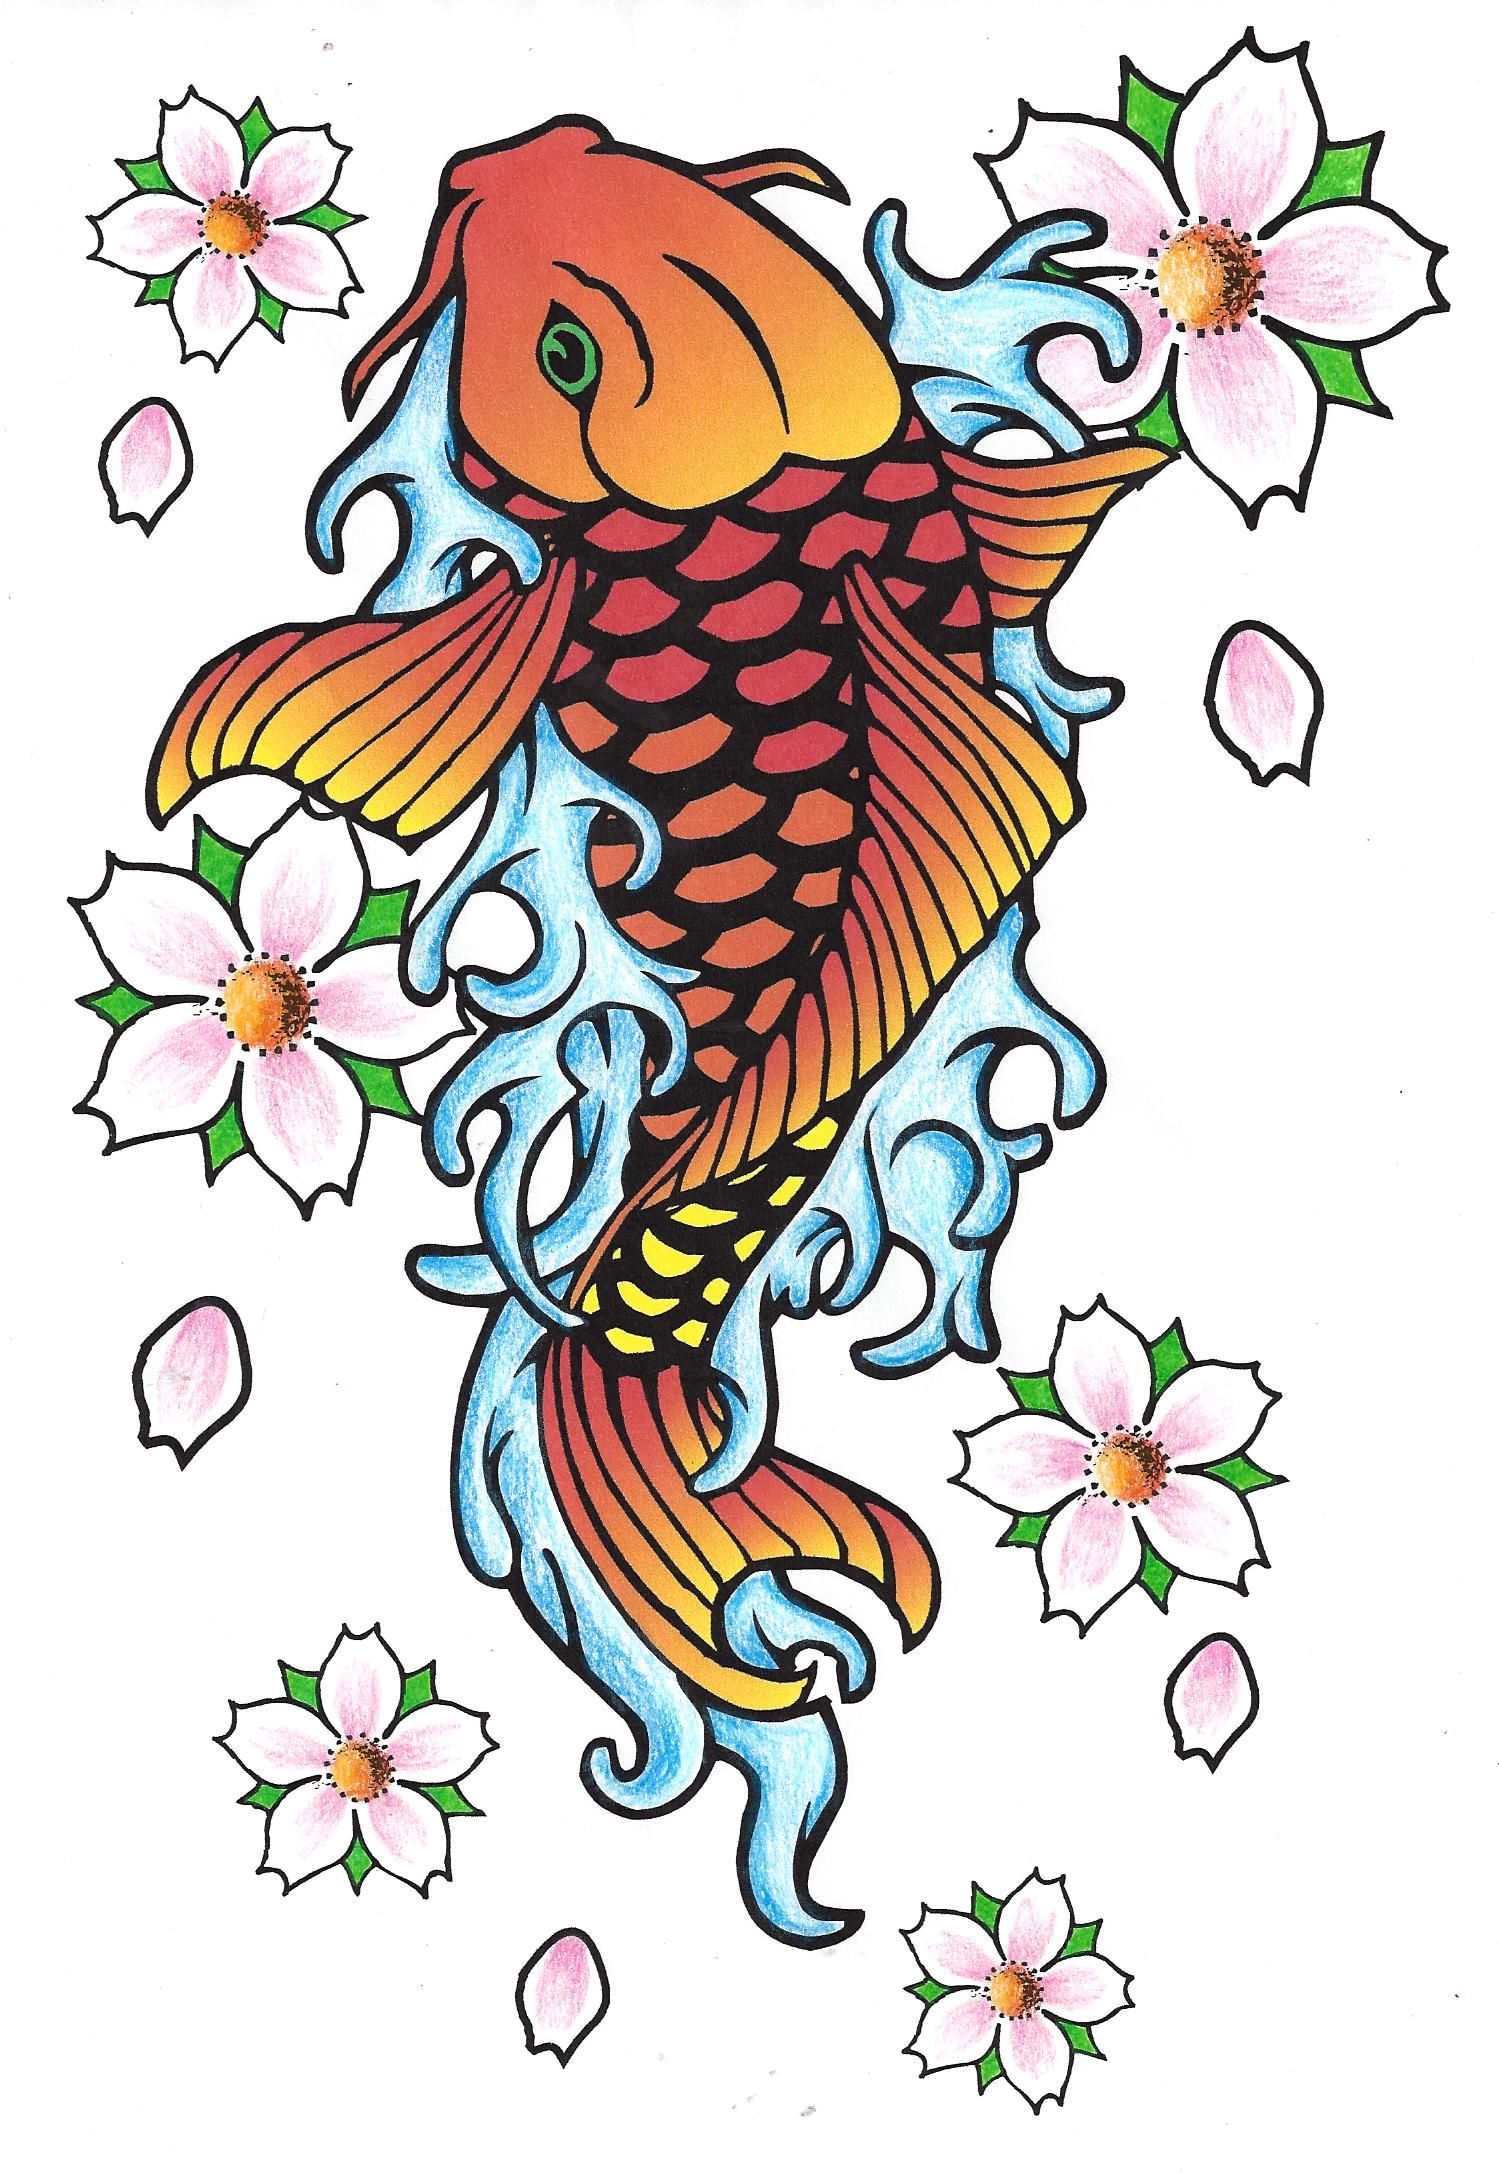 Koi Fish With Cherry Blossoms Fish Drawings Cherry Blossom Tattoo Drawings